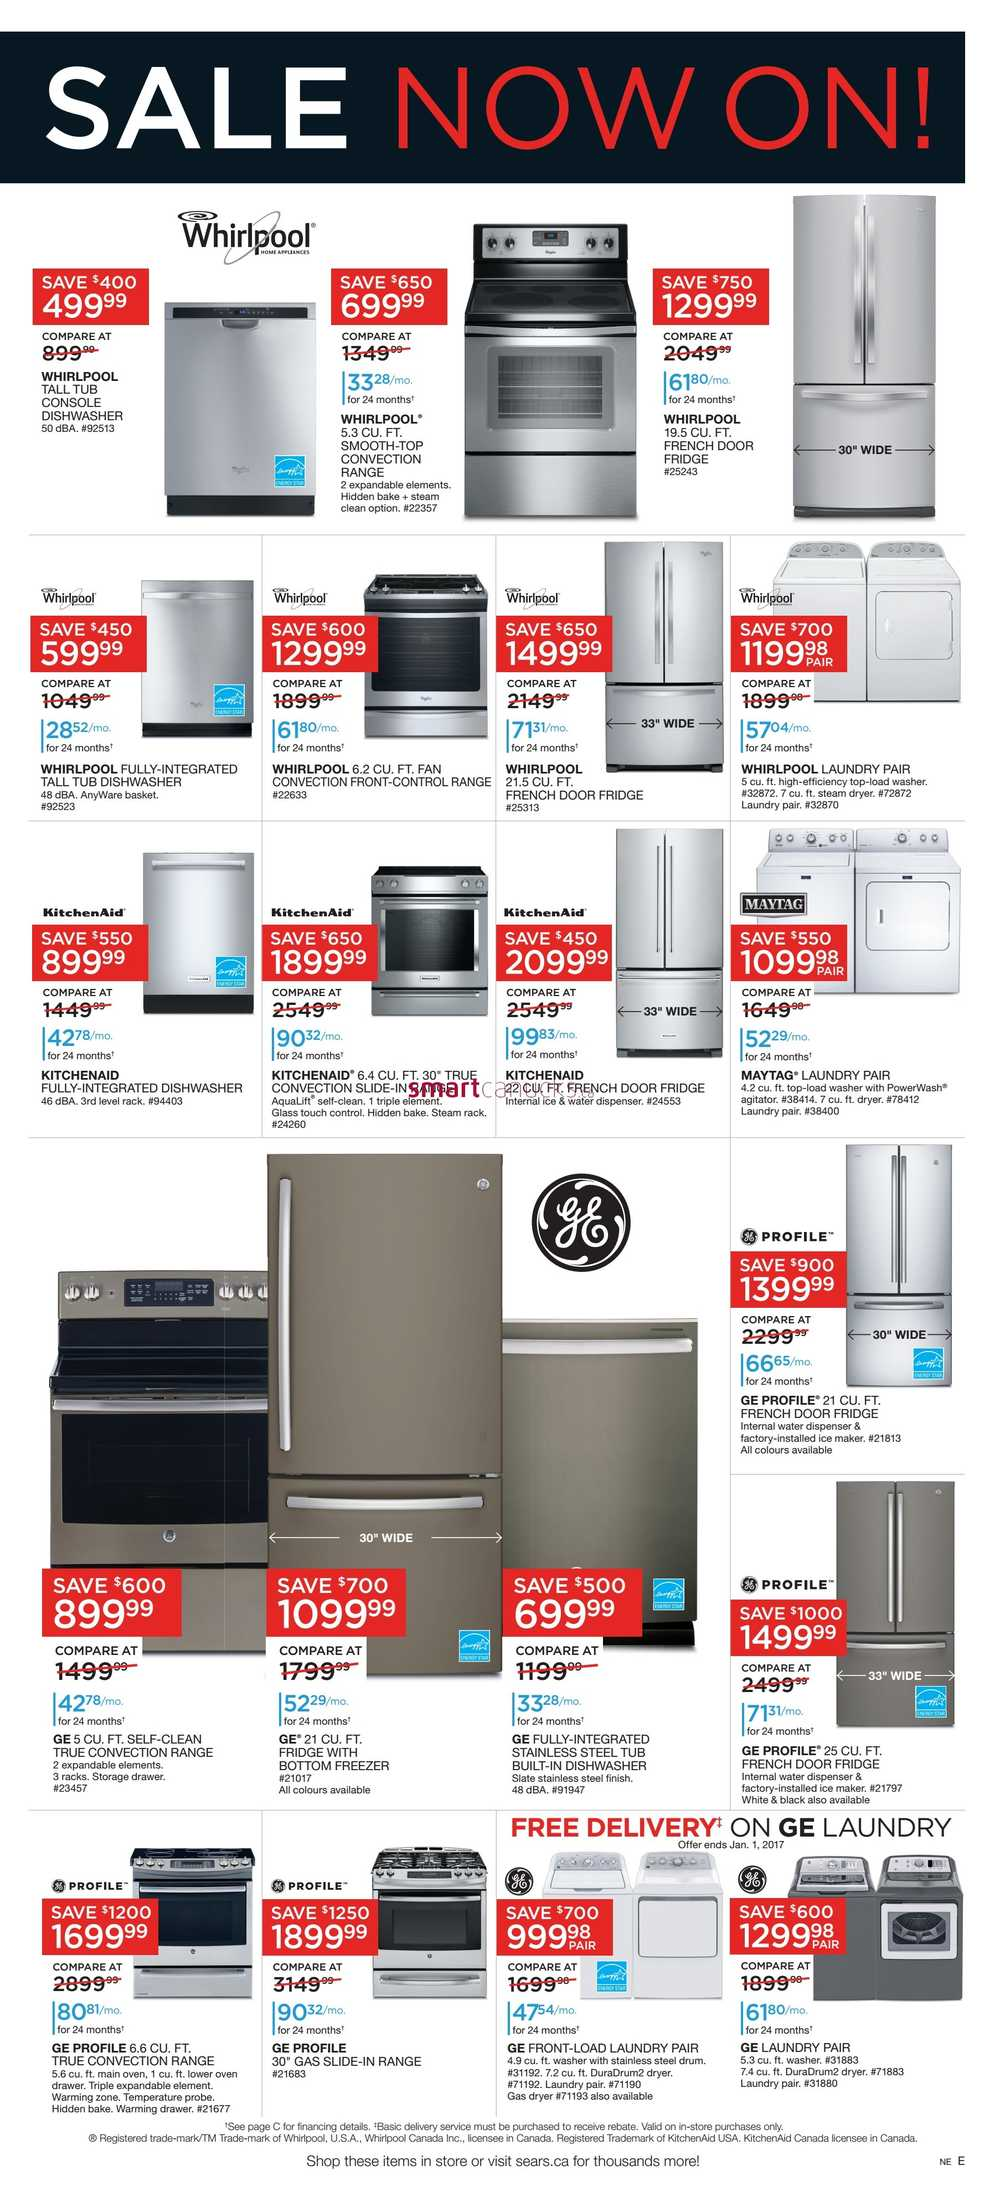 Shop the best front load washing machines from all the top brands at Sears. Sears carries premier appliances at amazing prices, so you always get a good deal.